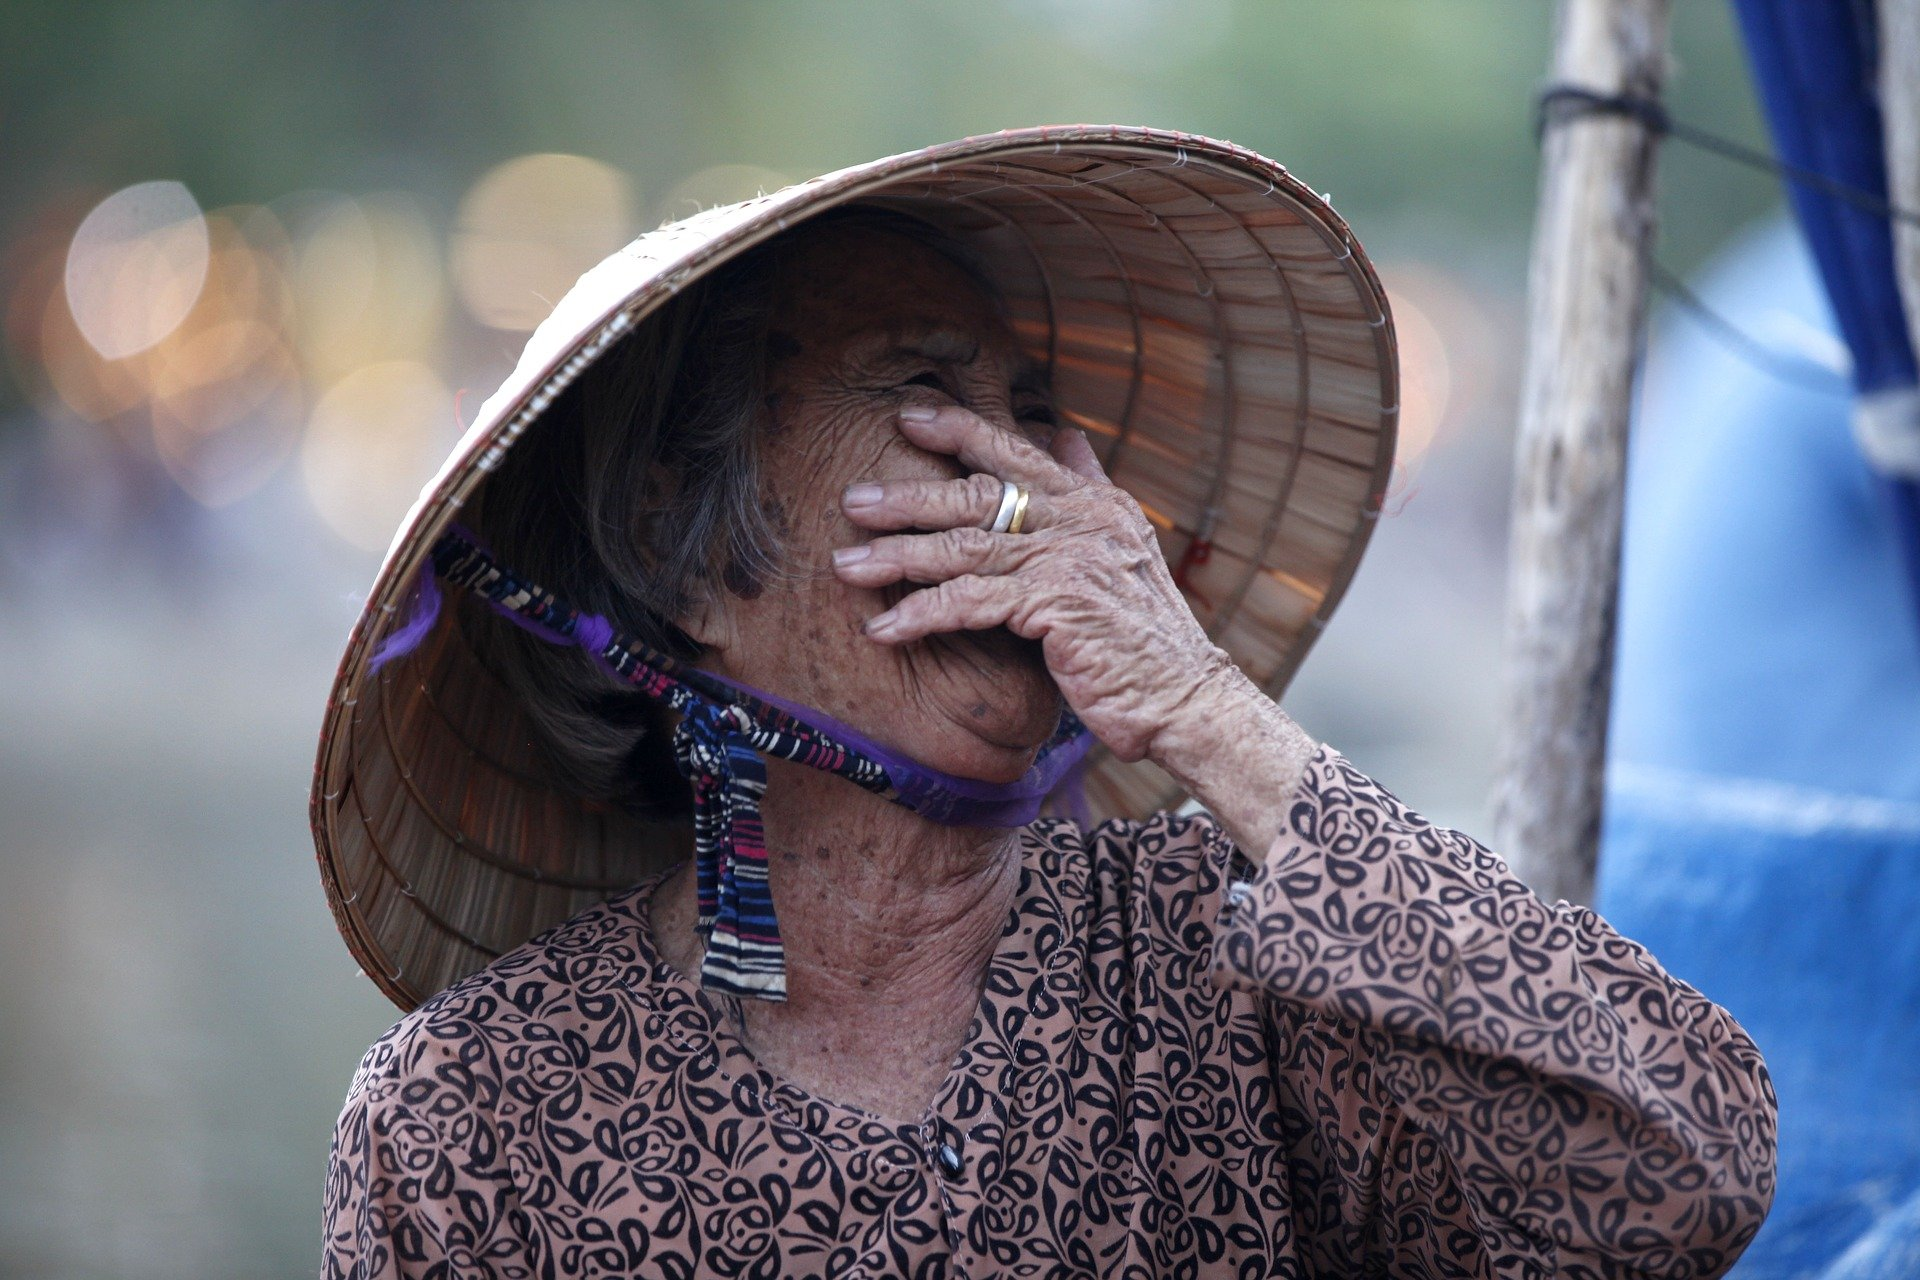 An old woman wearing a hat, covering her mouth while laughing | Photo: Pixabay/Thangphan